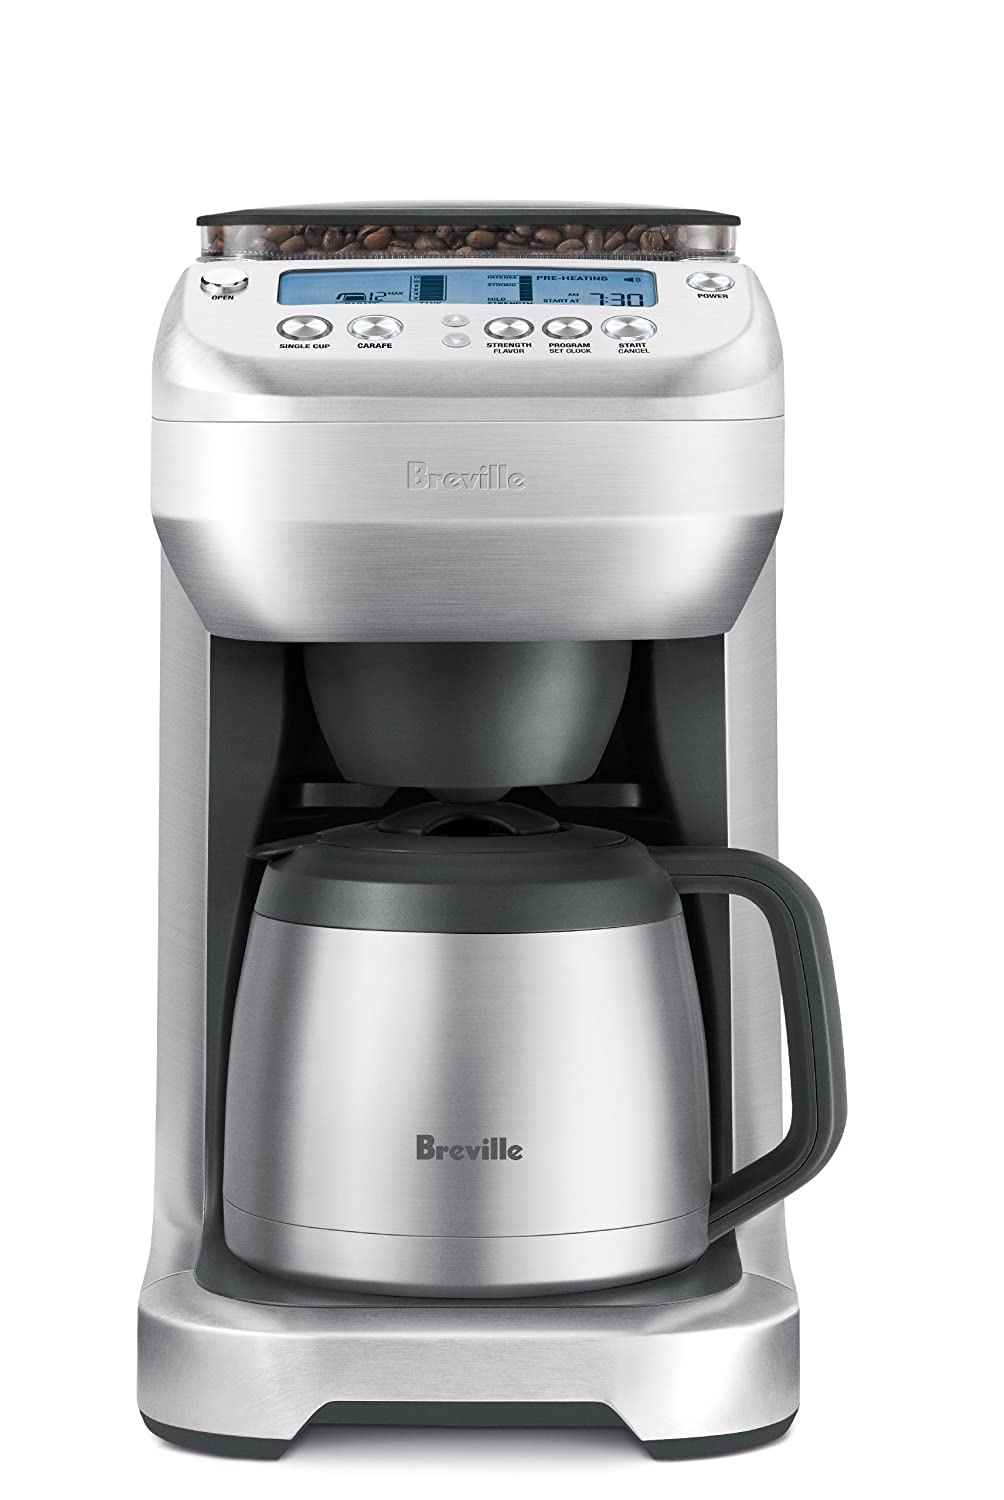 Coffee maker with grinder and thermal carafe - Amazon Com Breville Bdc600xl Youbrew Drip Coffee Maker Drip Coffeemakers Kitchen Dining